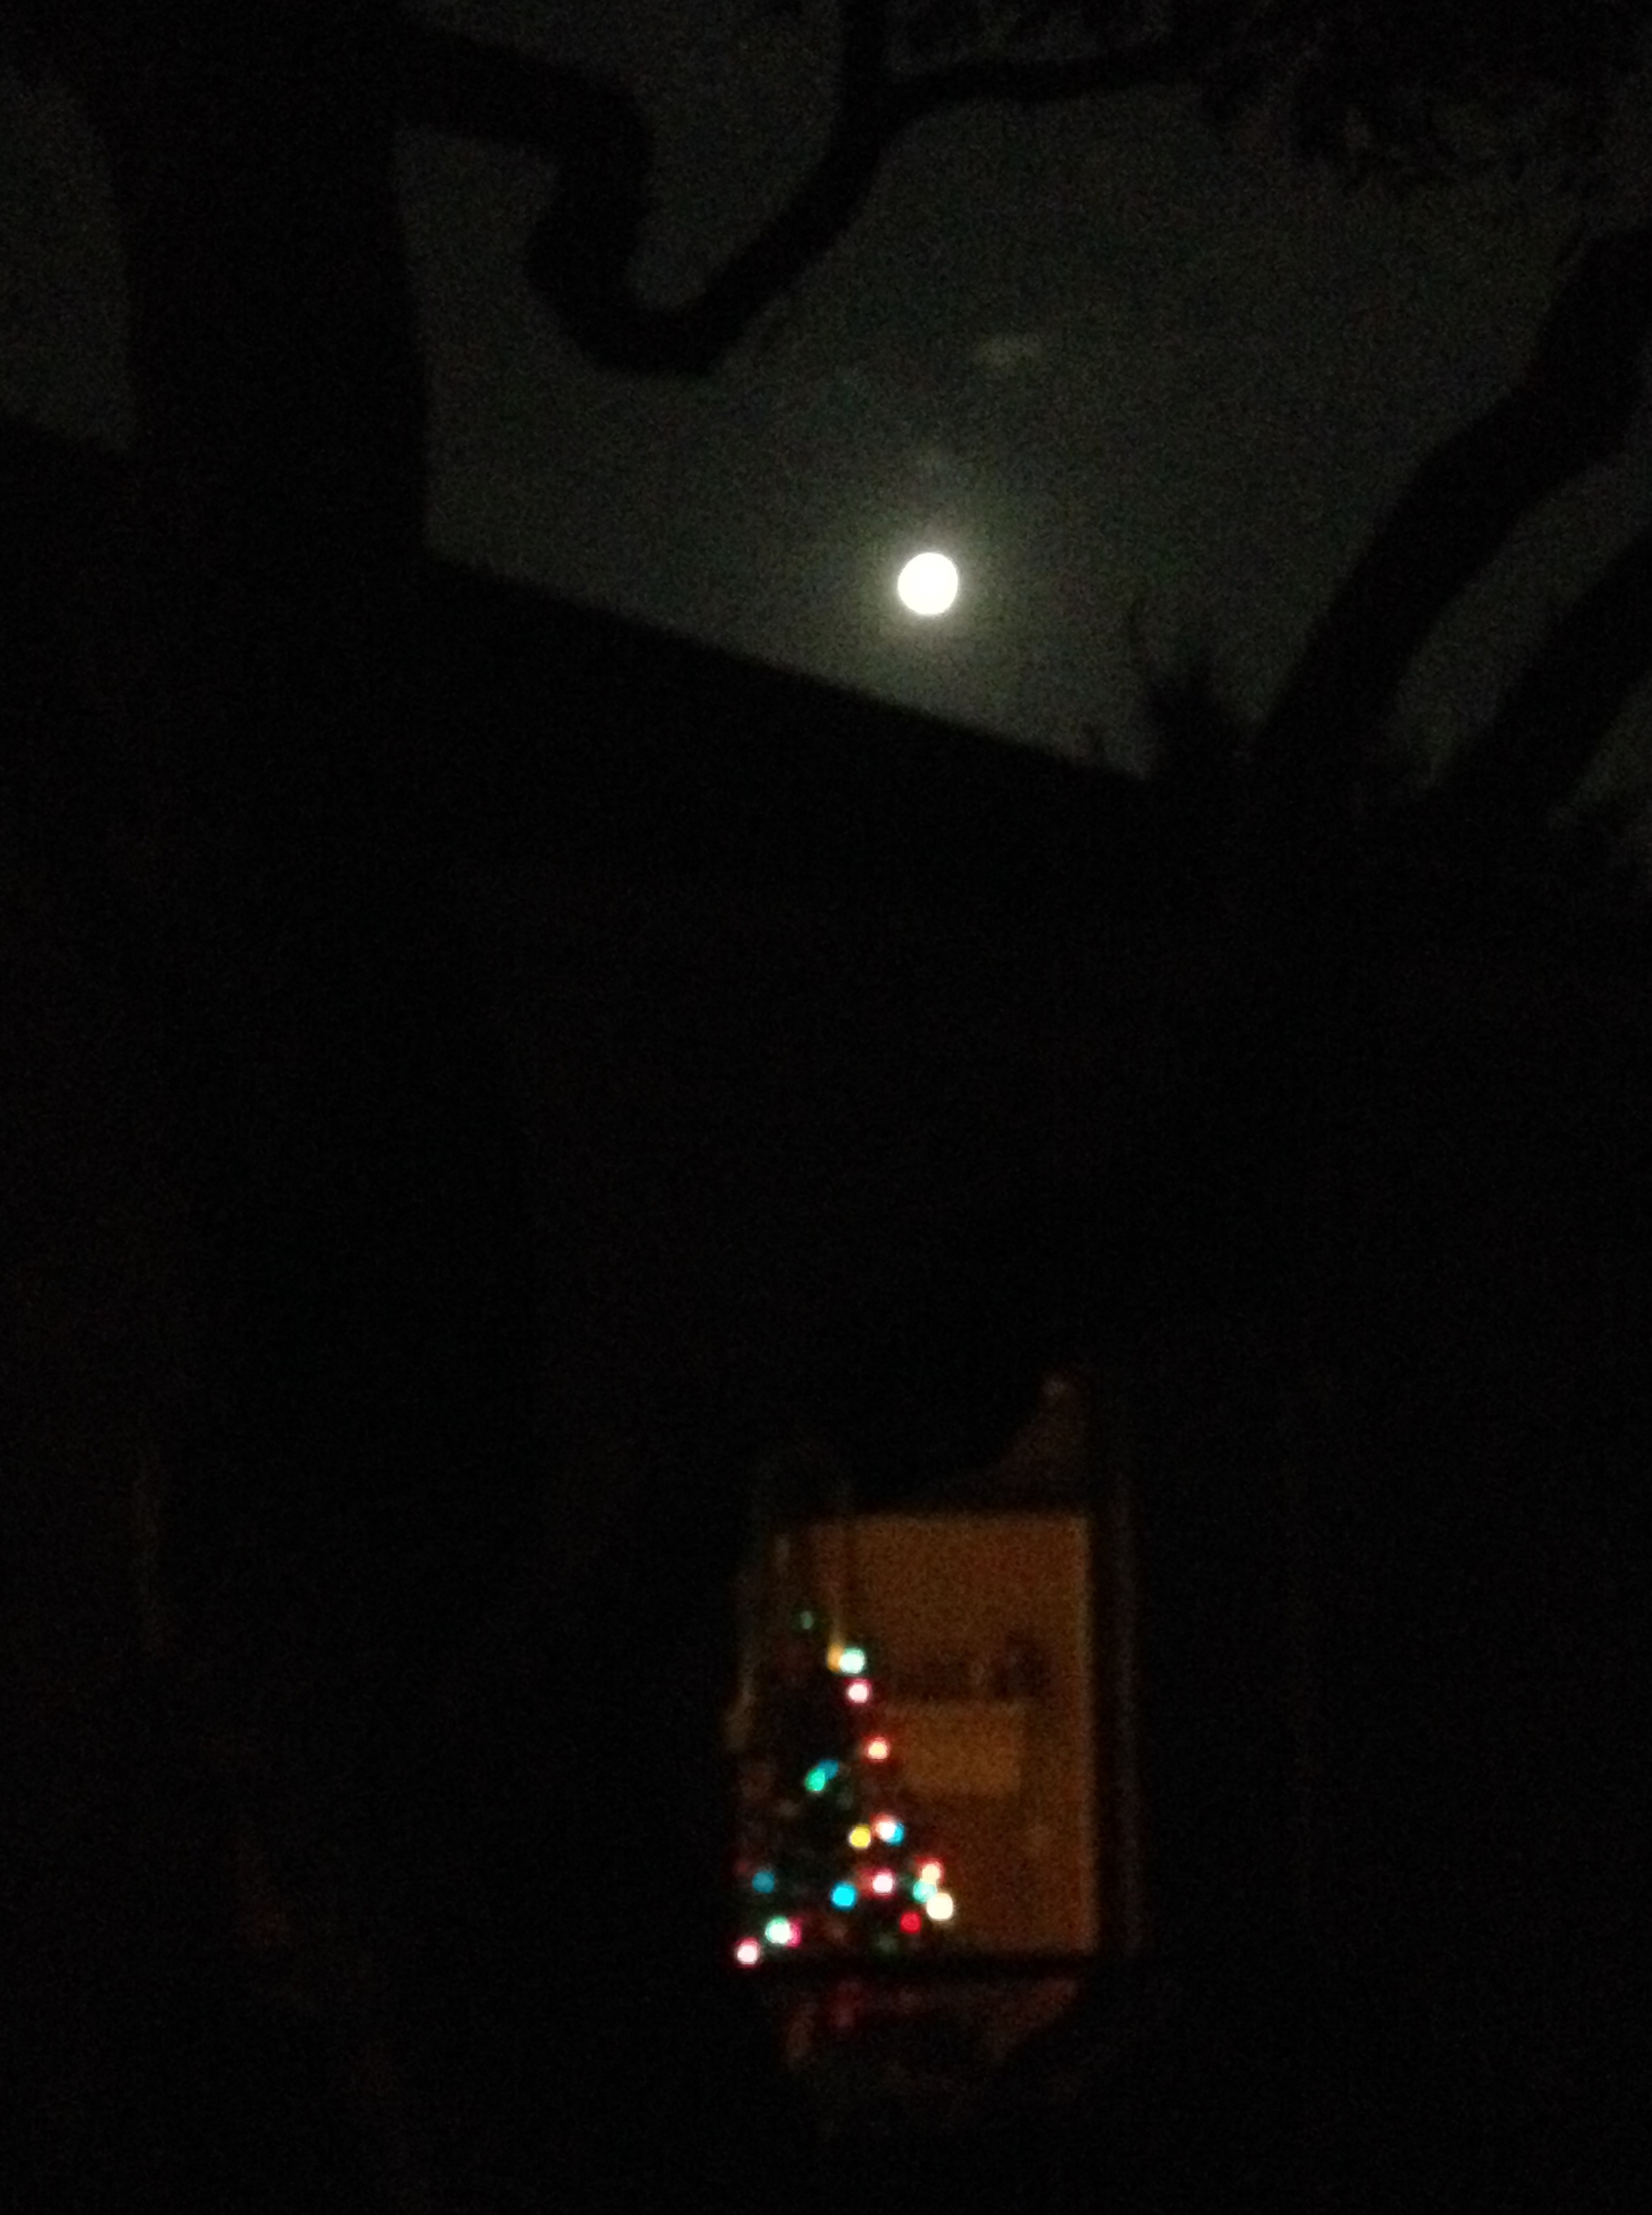 A full moon on Christmas hadn't happened in four decades, making this full moon over the Christmas Tree specially beautiful, and the best moon gazing for Christmas 2015